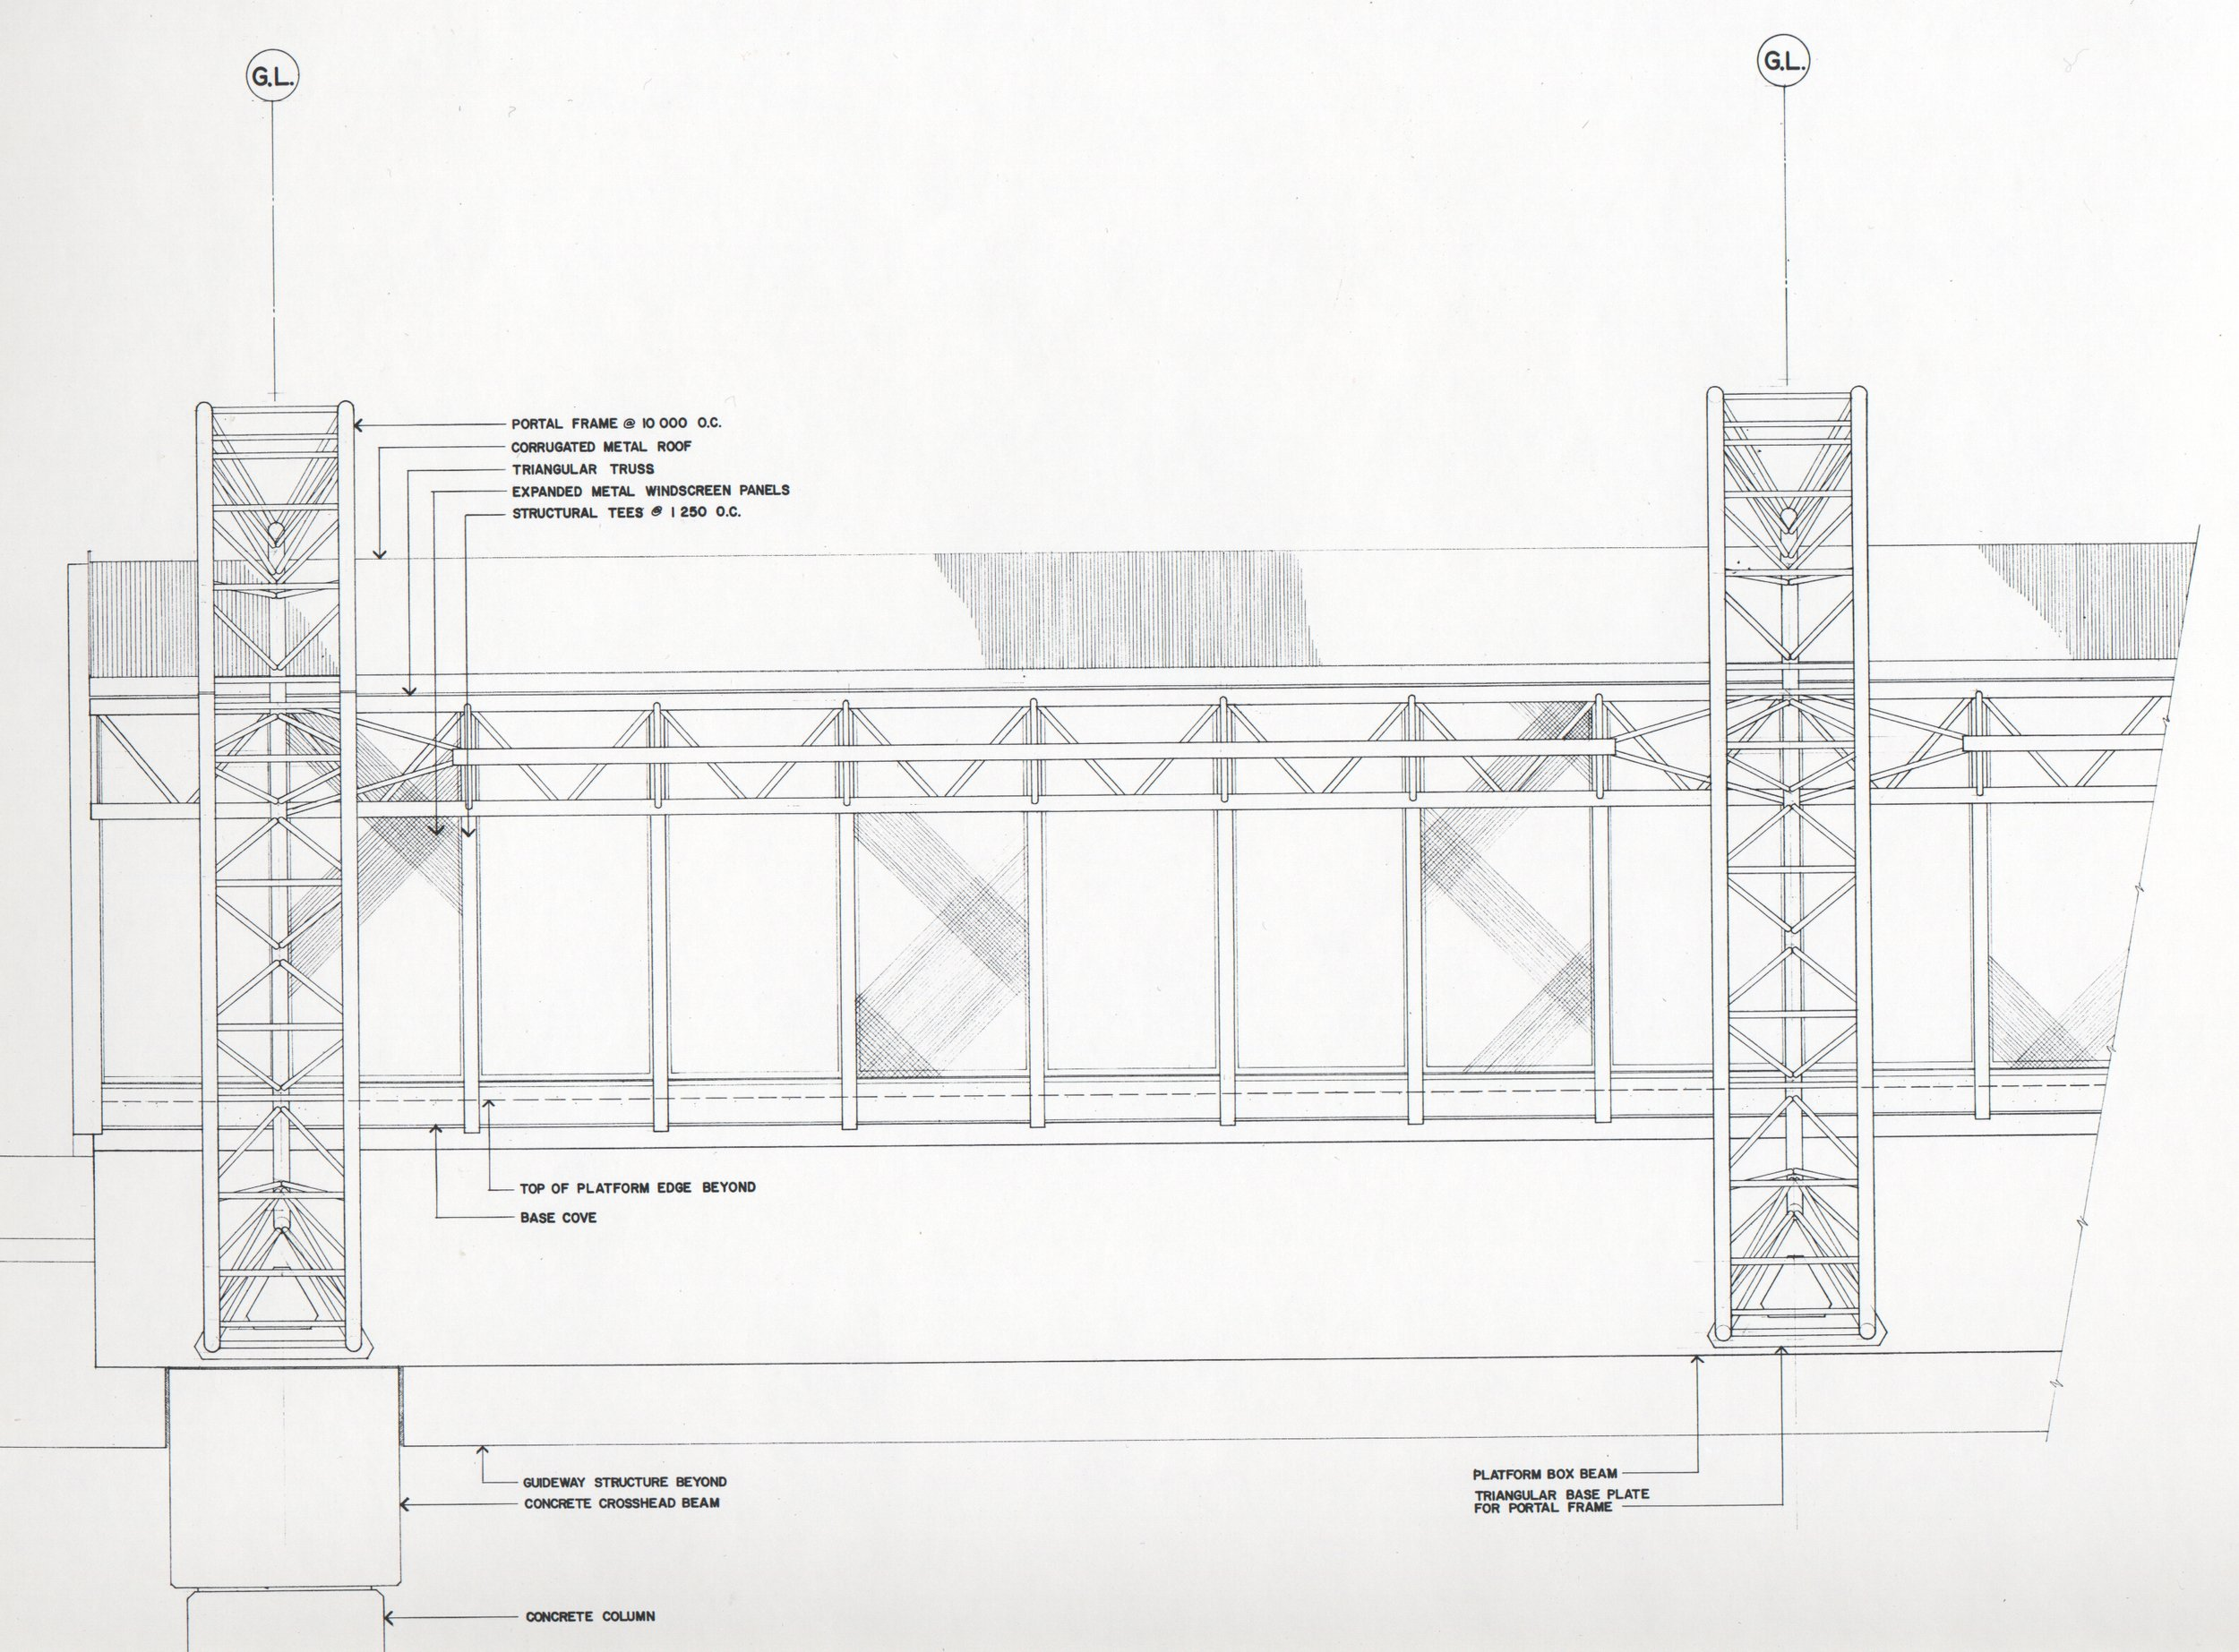 Prototypical Hoop Truss Station Elevation - Overall Systems Design drawing